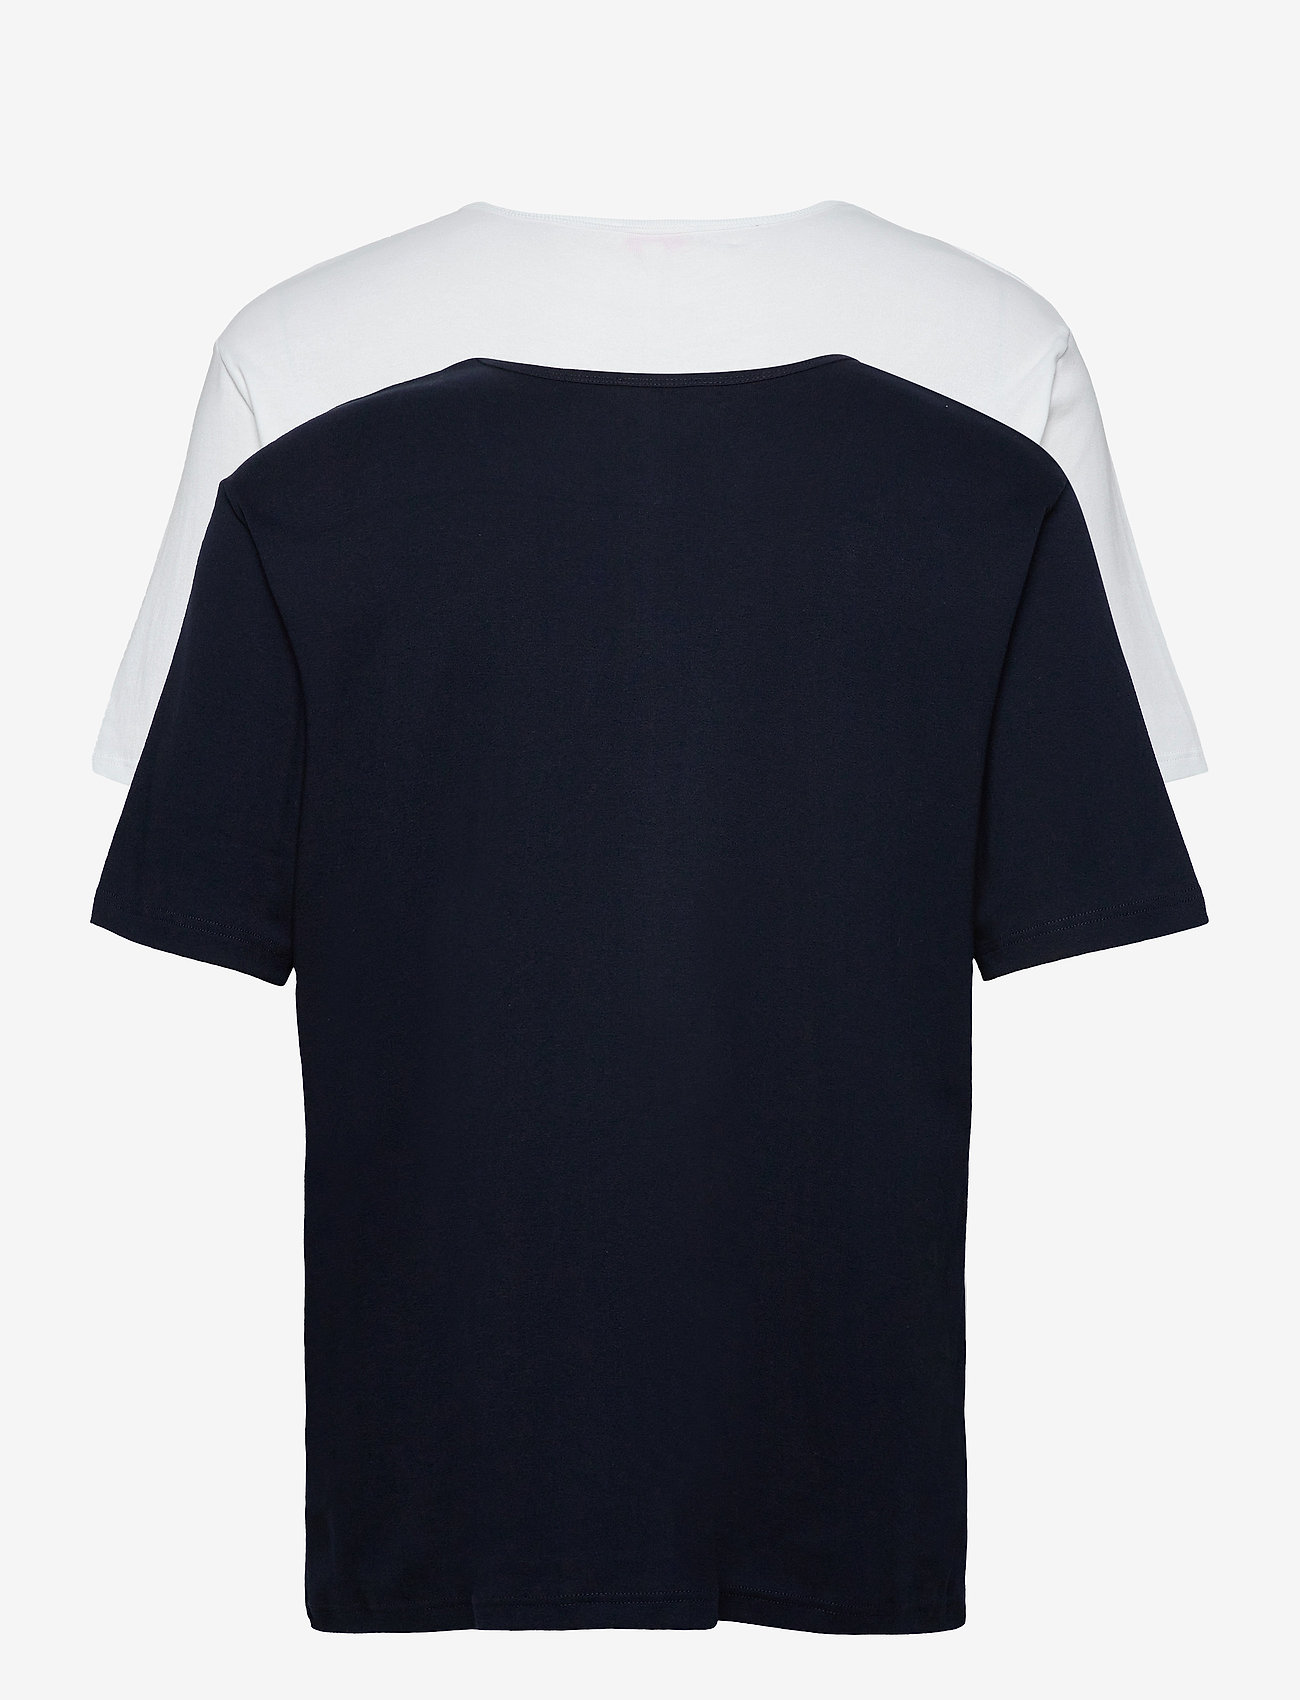 Armor Lux - 2 Pack T-Shirt - multipack - white/rich navy - 1